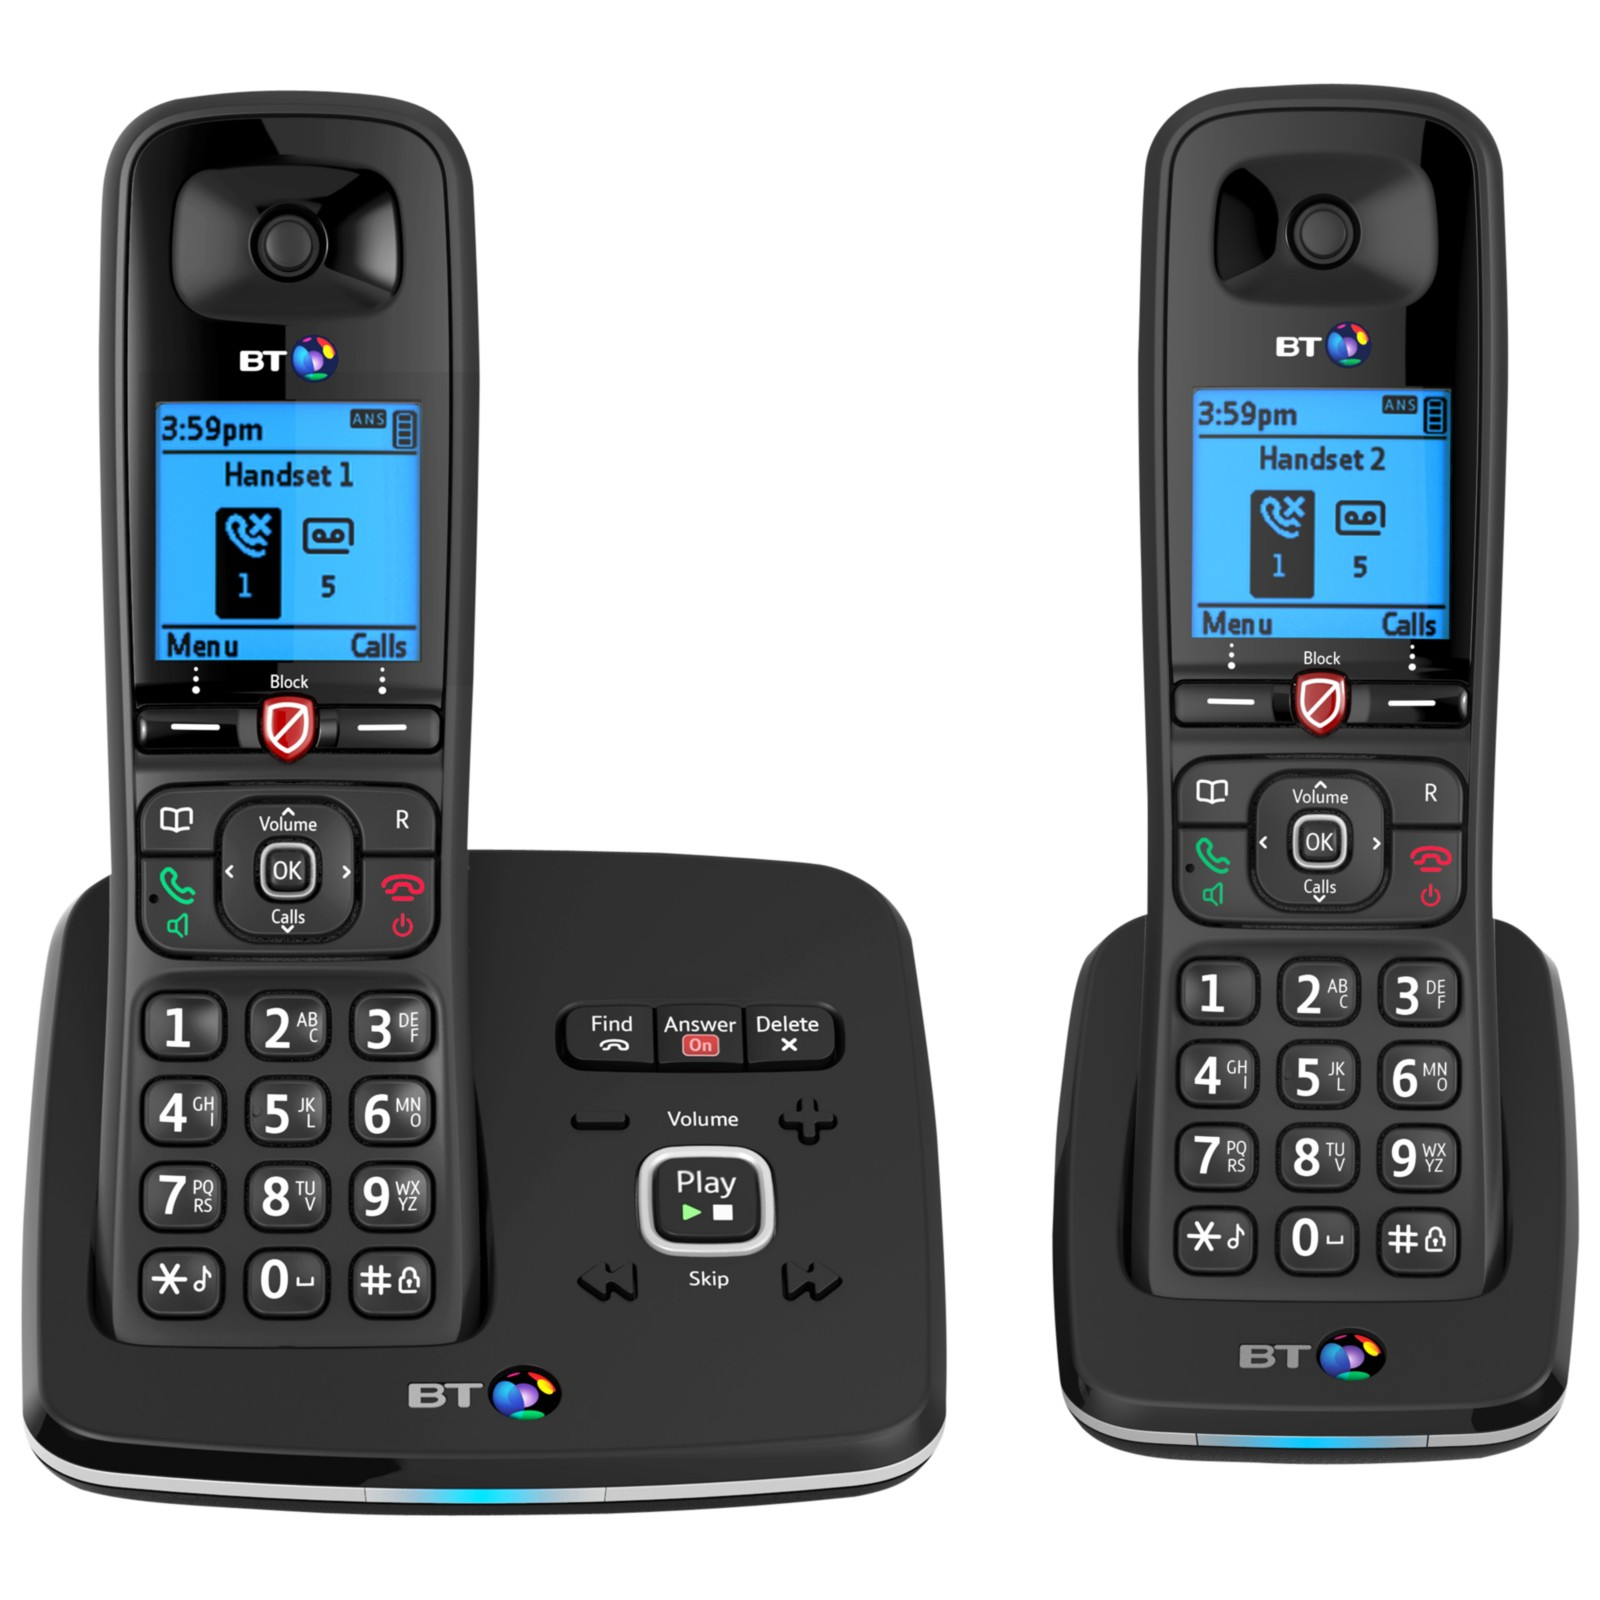 BT 6610 Digital Cordless Phone With Nuisance Call Blocking & Answering Machine